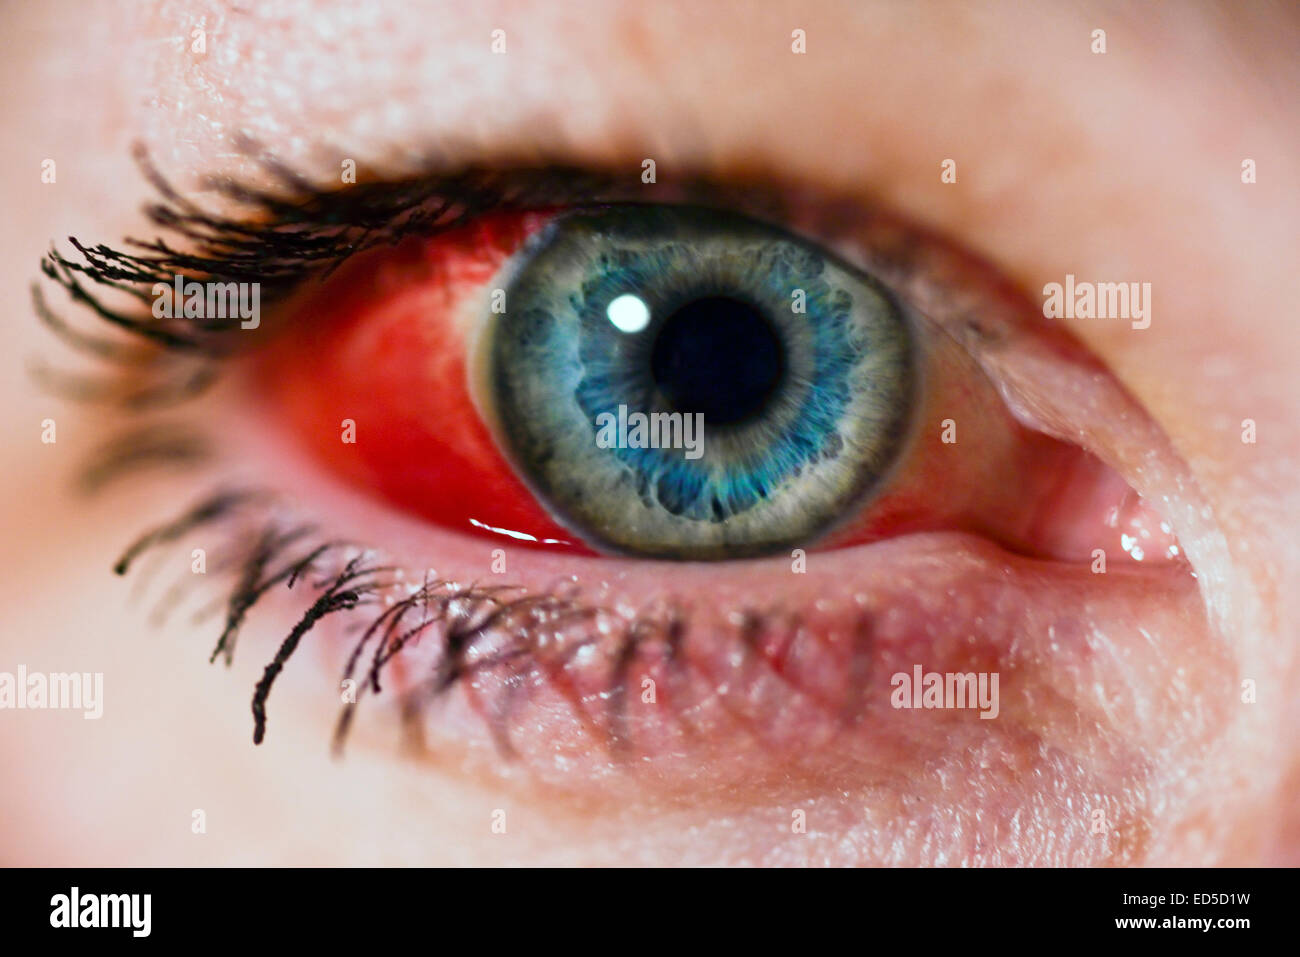 Eye broken blood pictures vessel